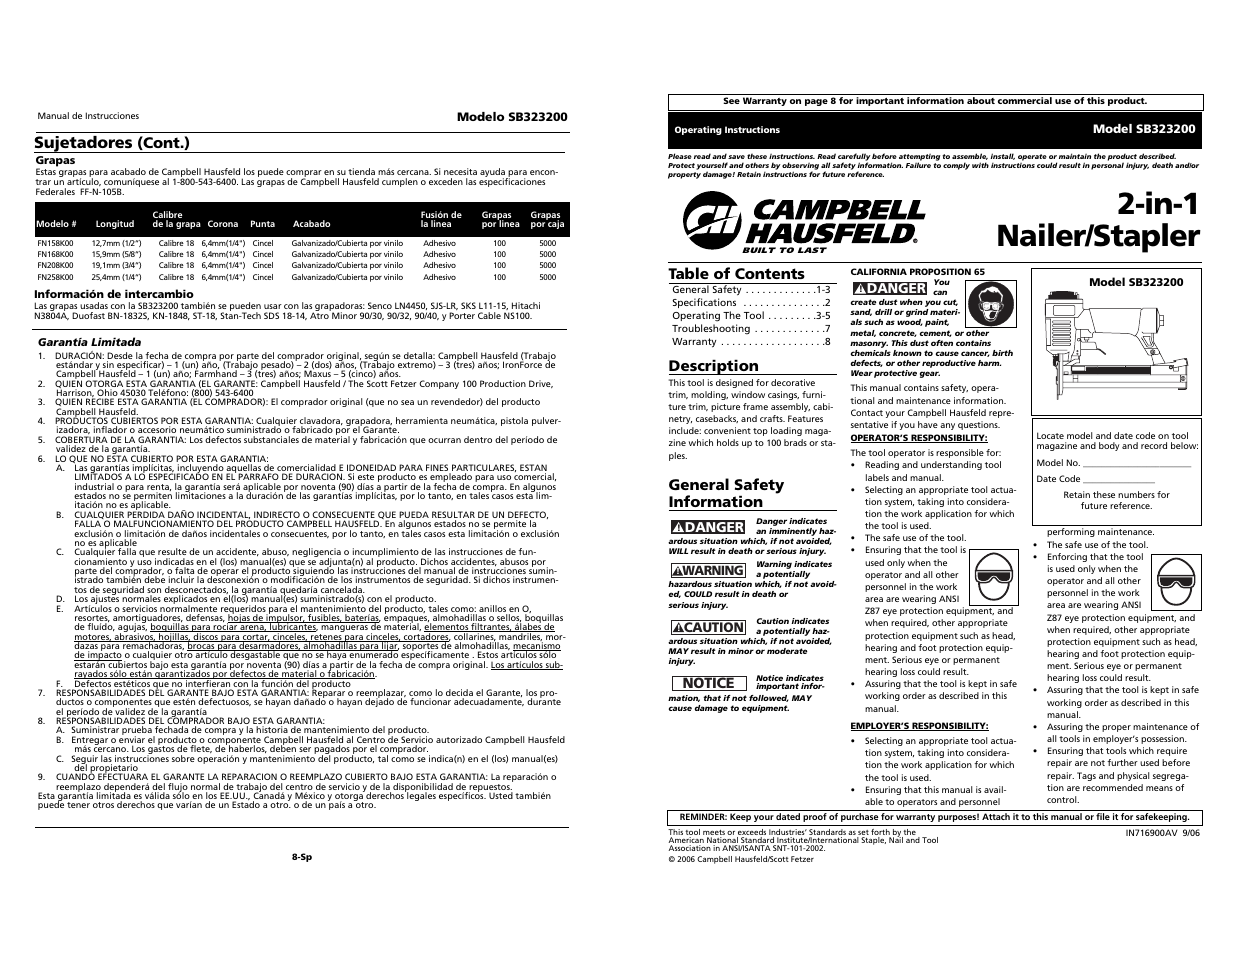 campbell hausfeld sb323200 user manual 12 pages original mode rh manualsdir com campbell hausfeld framing nailer manual campbell hausfeld iron force framing nailer manual